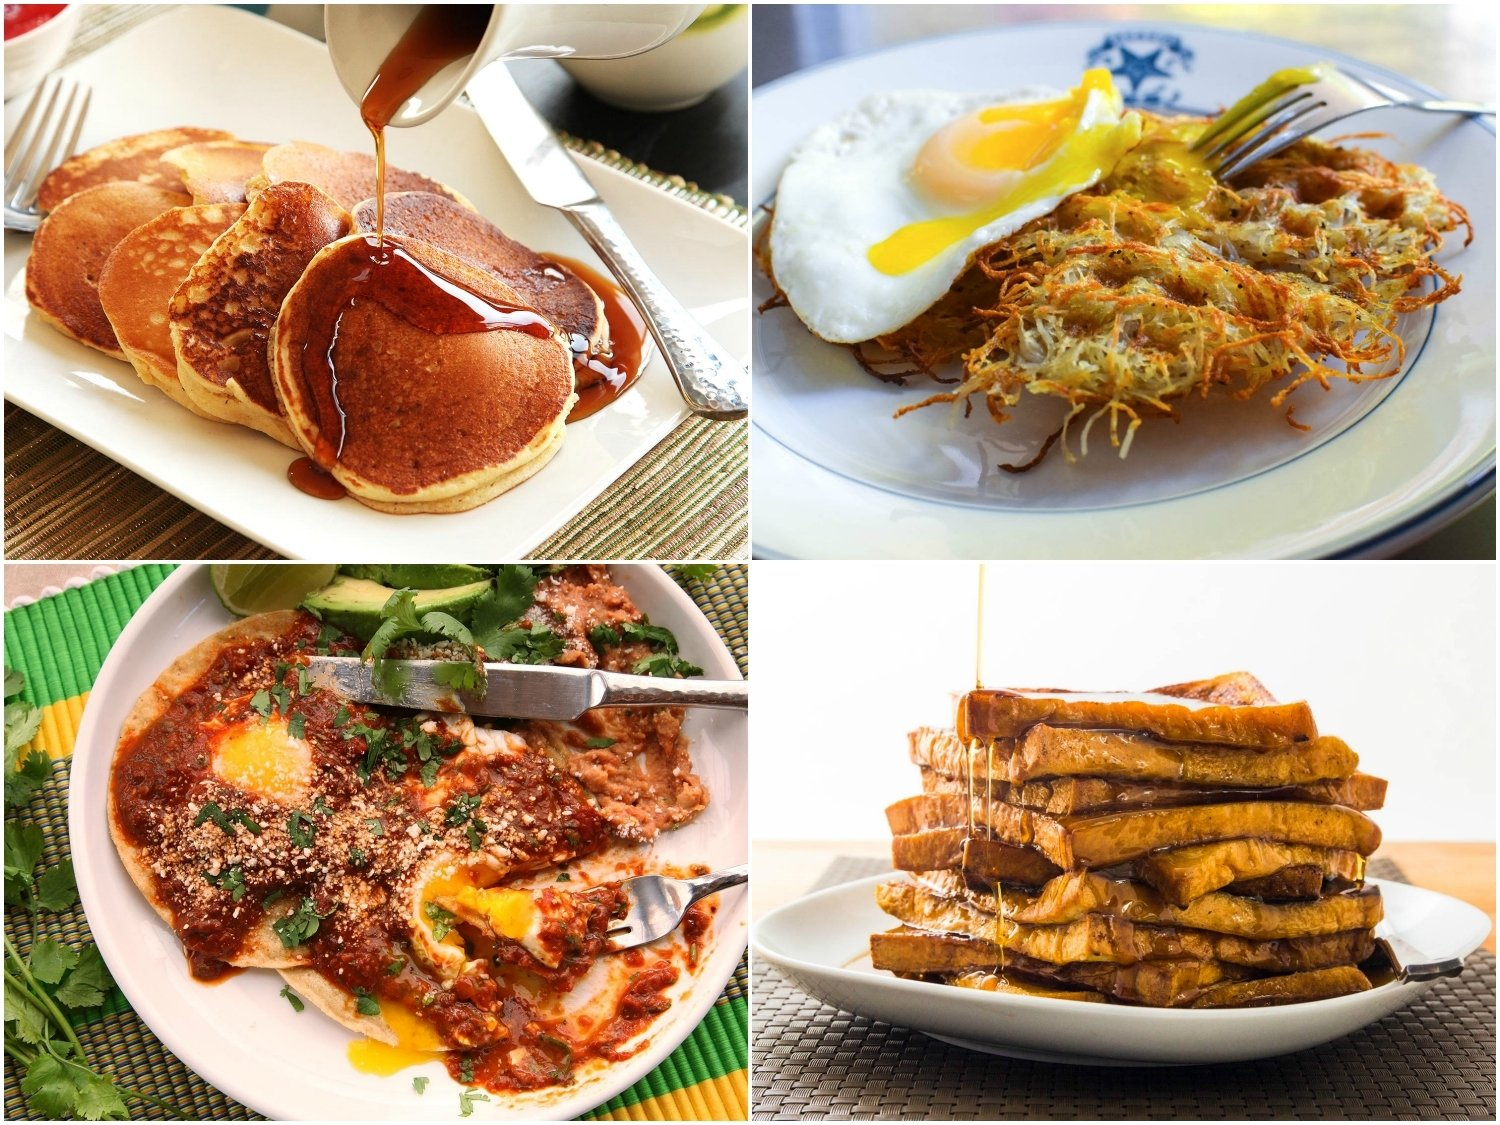 10 Best Breakfast Ideas For A Large Group 17 easy breakfasts to feed a crowd serious eats 7 2021